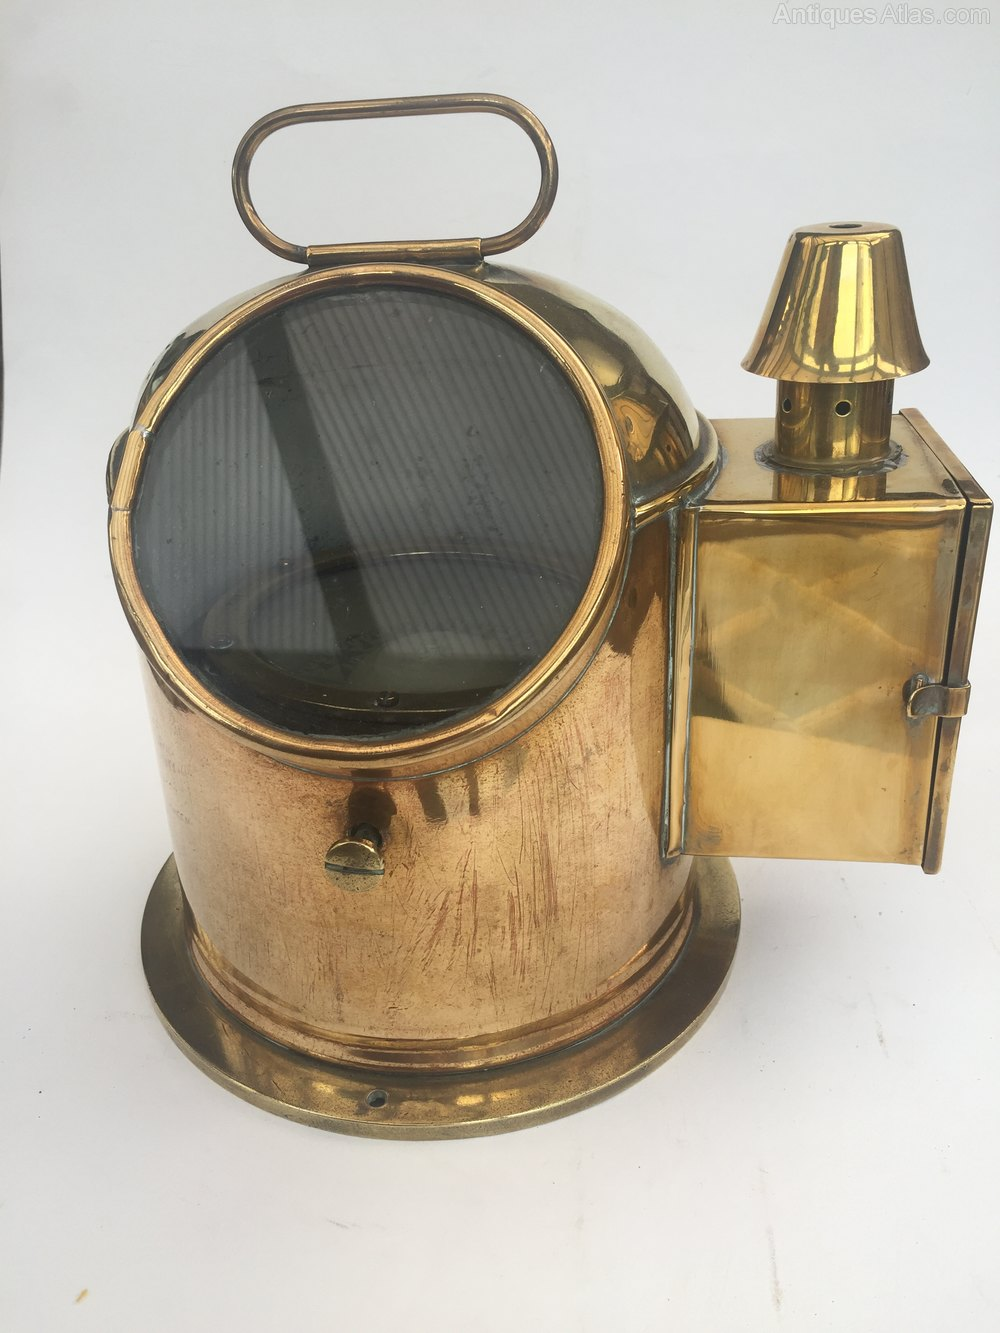 Antiques Atlas - Nautical Antique Brass Binnacle Compass